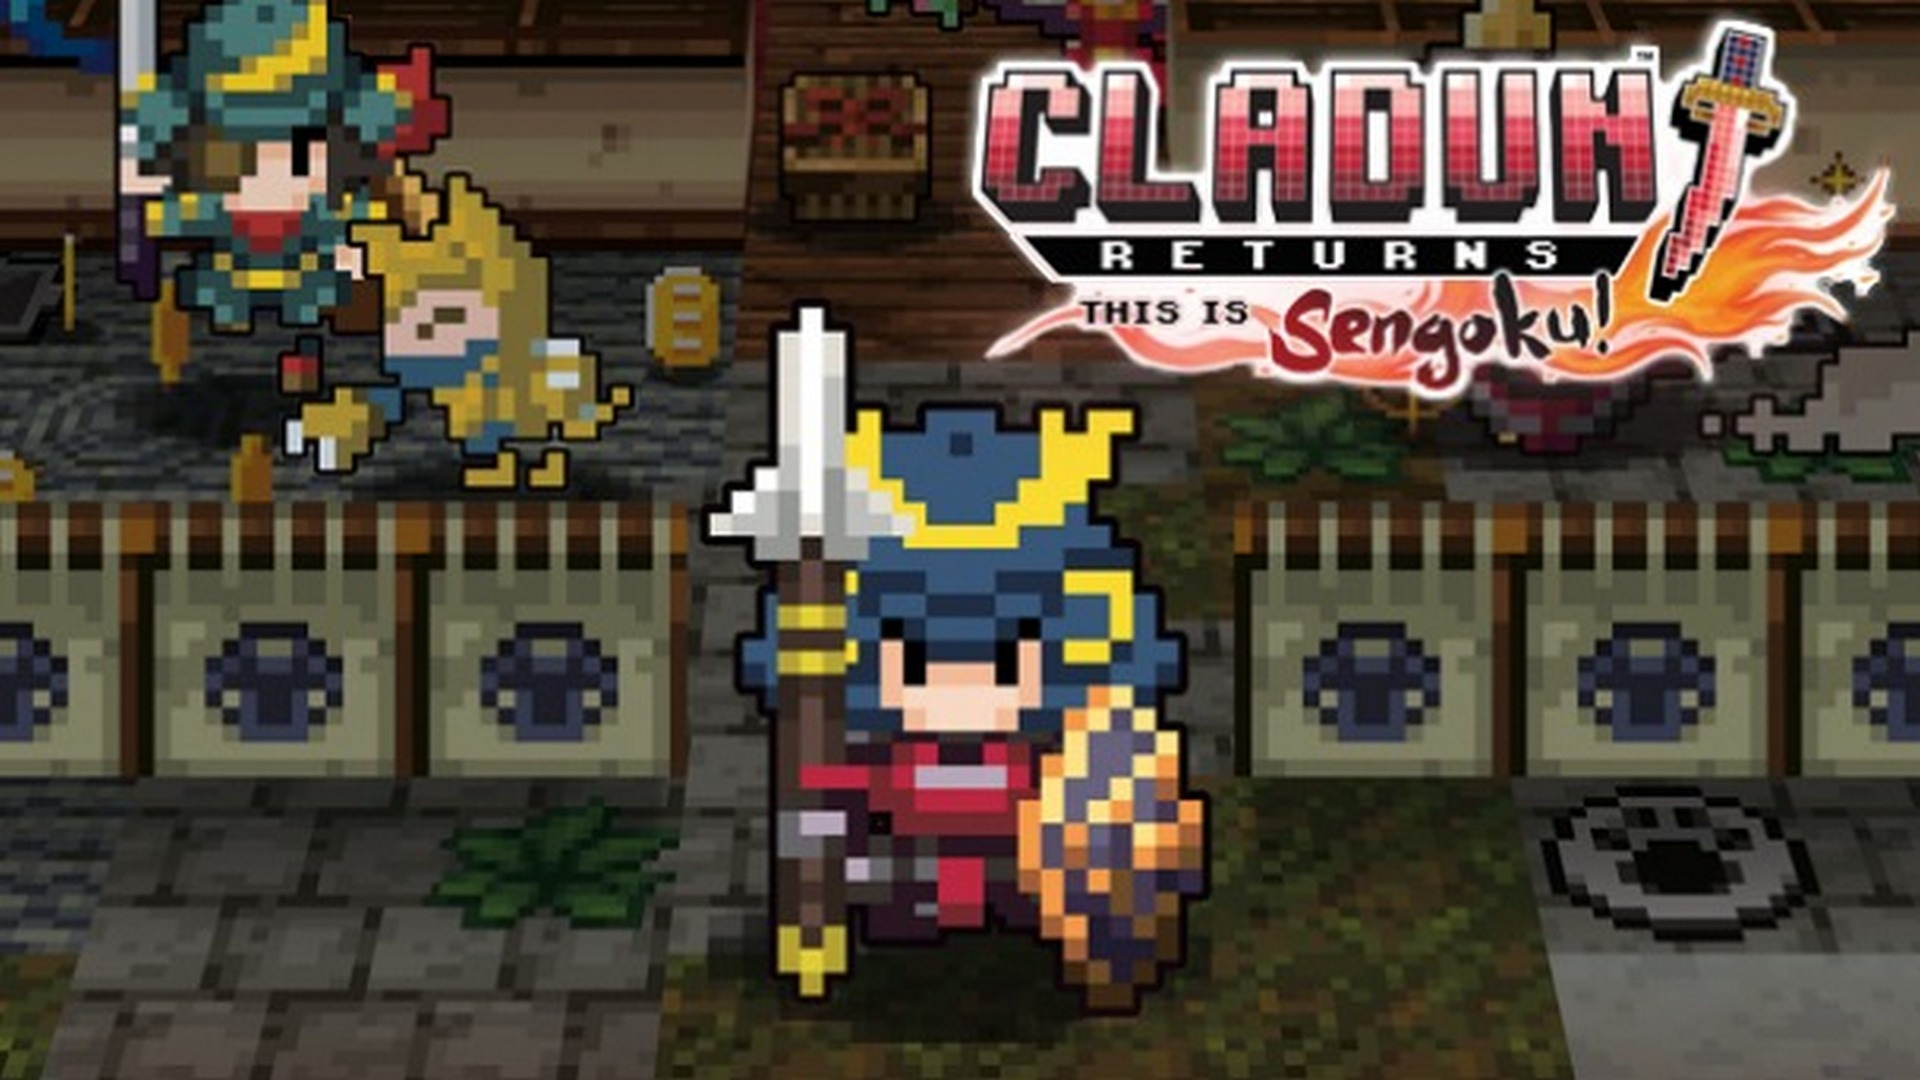 cladun-returns-this-is-sengoku-top-pn